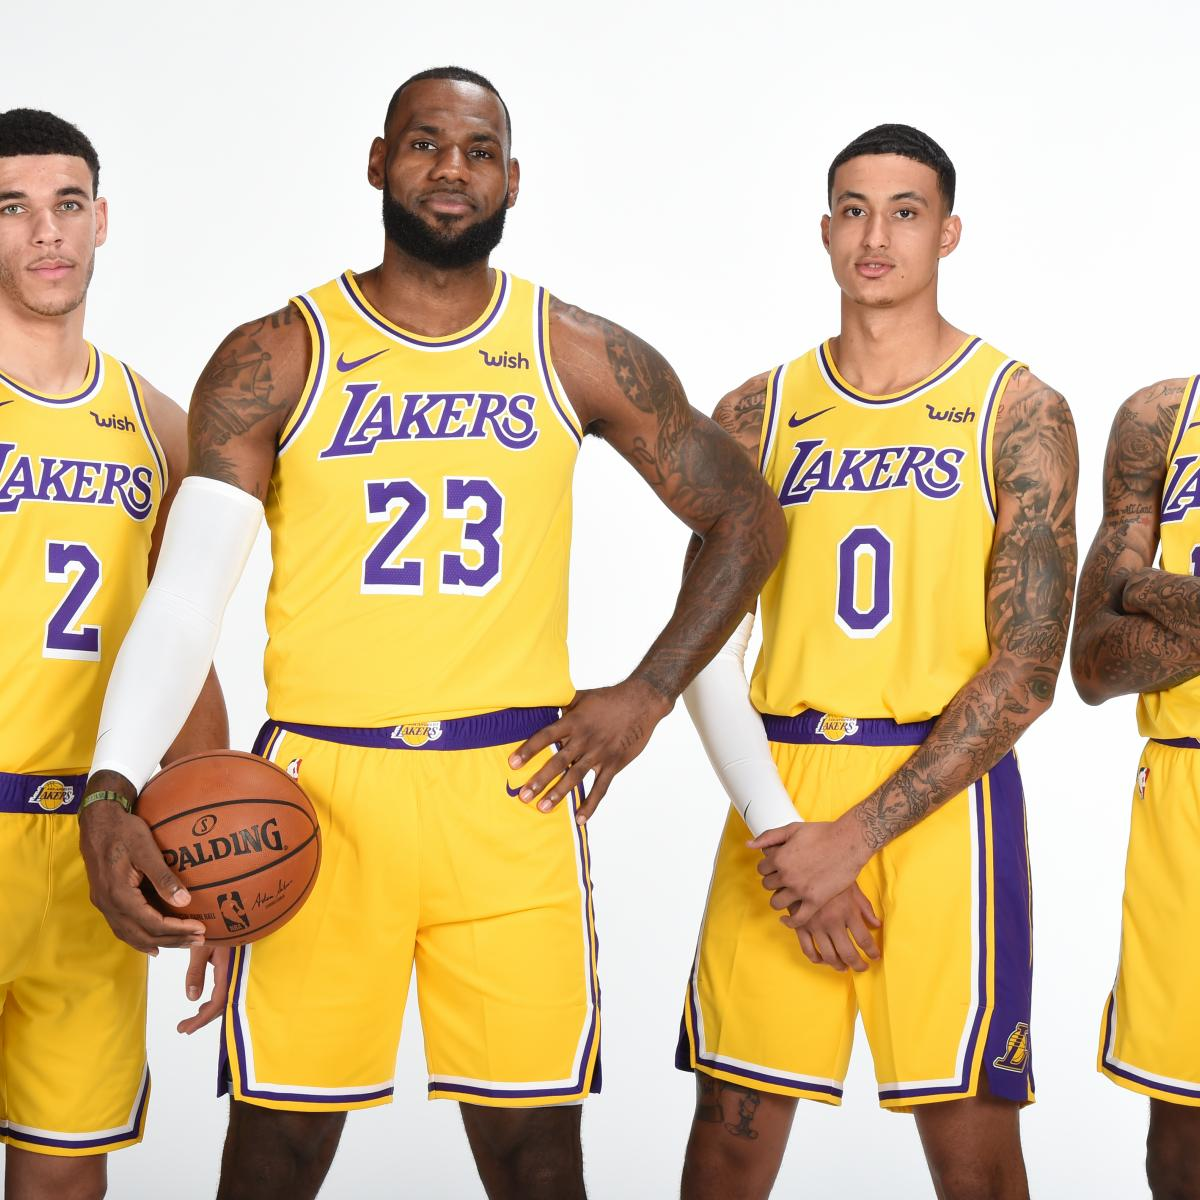 628bd3dc2a3 Lakers News: LeBron James' Season Expectations, Lonzo Ball's New Look and  More